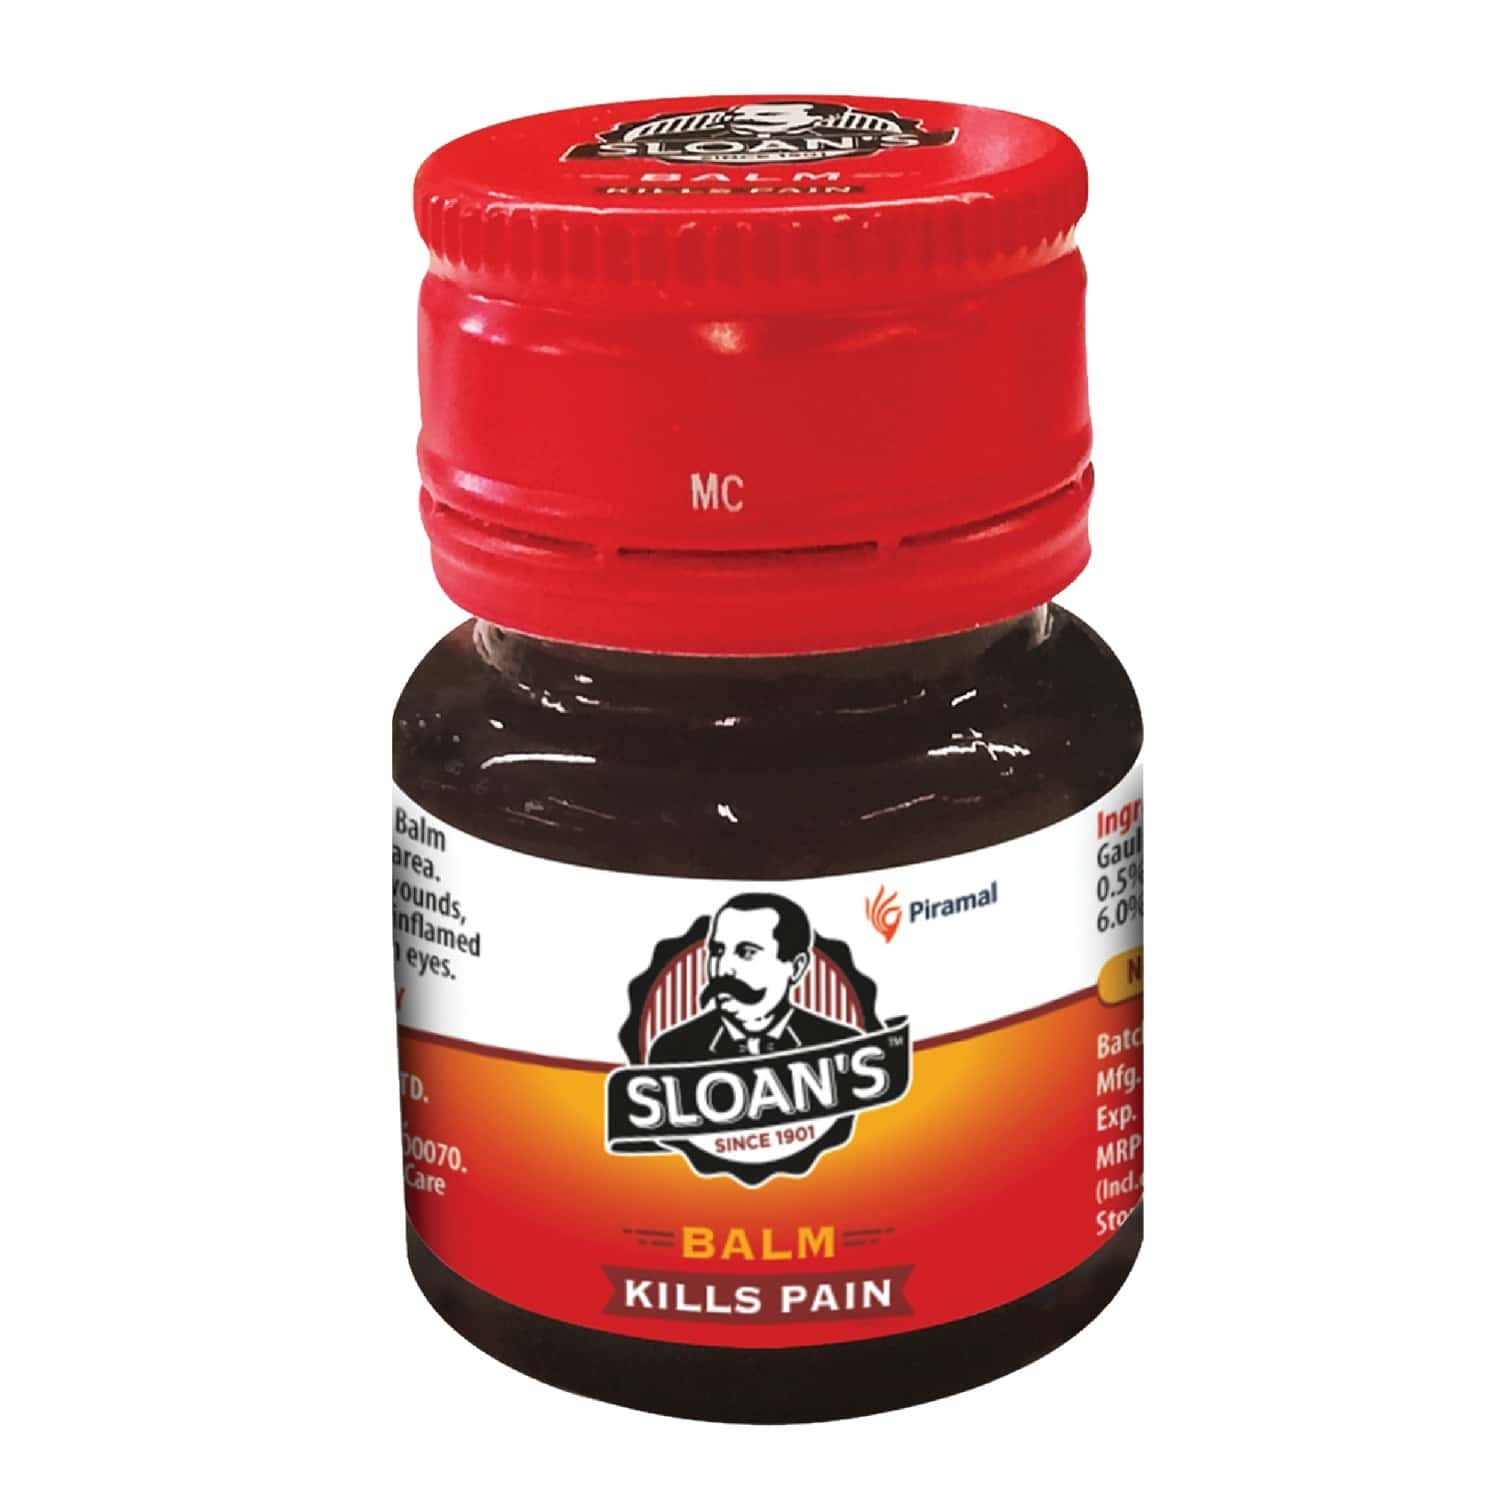 Sloan's Pain Relief Balm - 10g